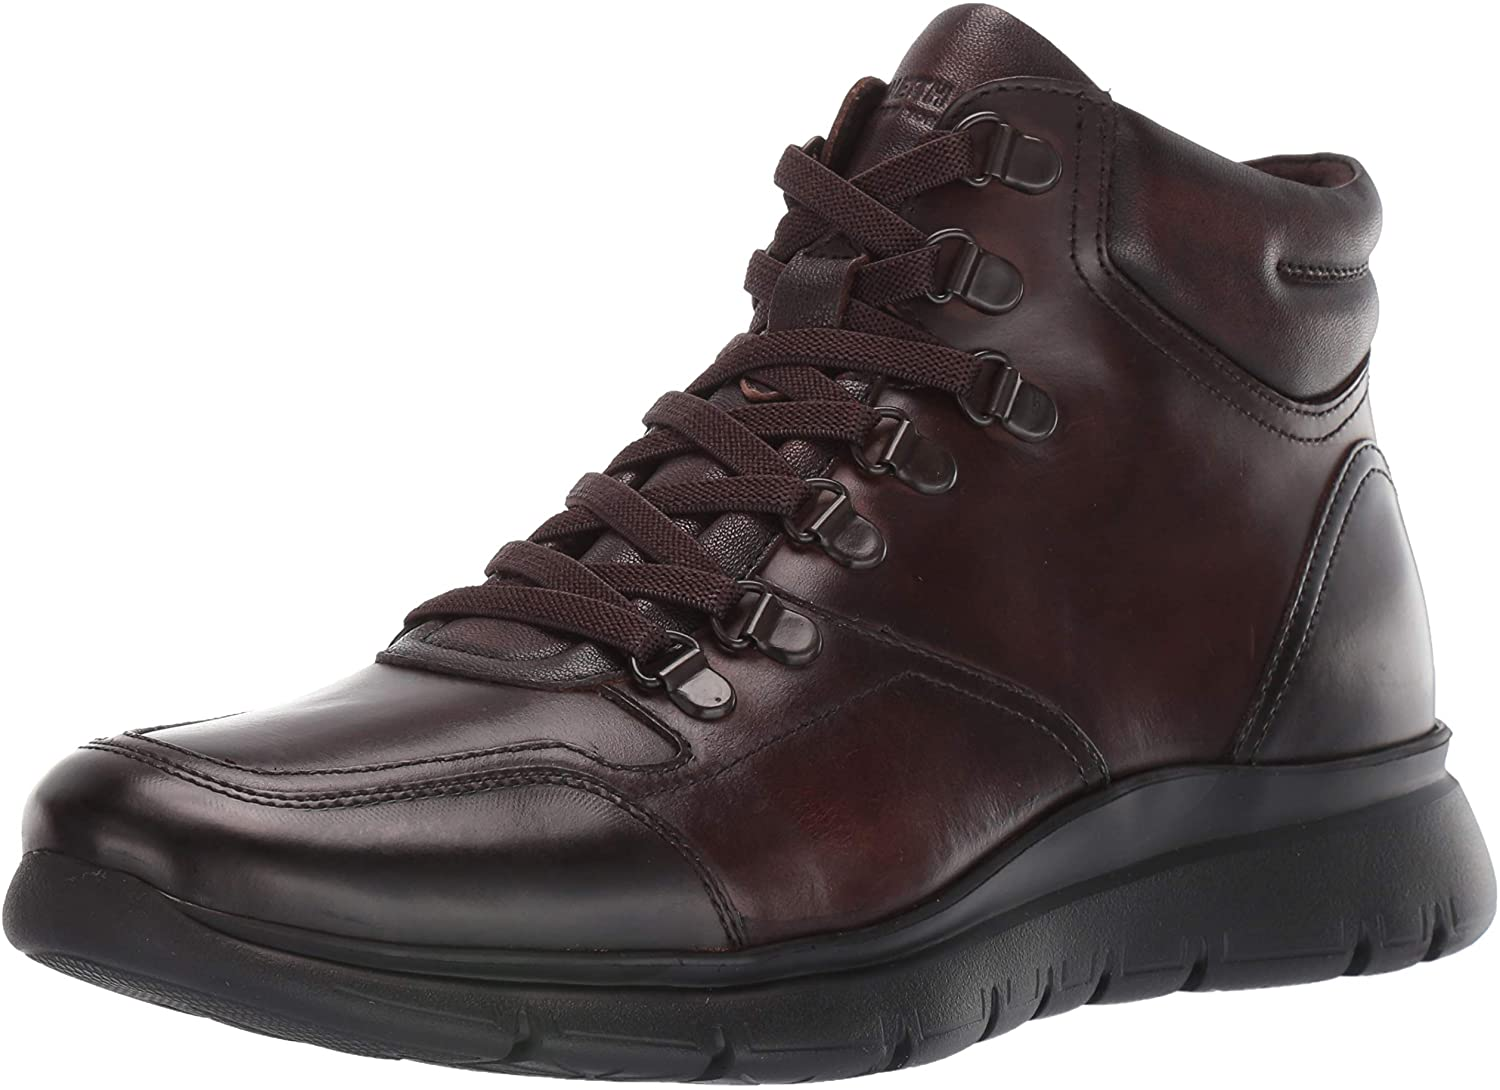 Kenneth Cole New York Men's Trent Boot B with a Flexible Sole Fashion